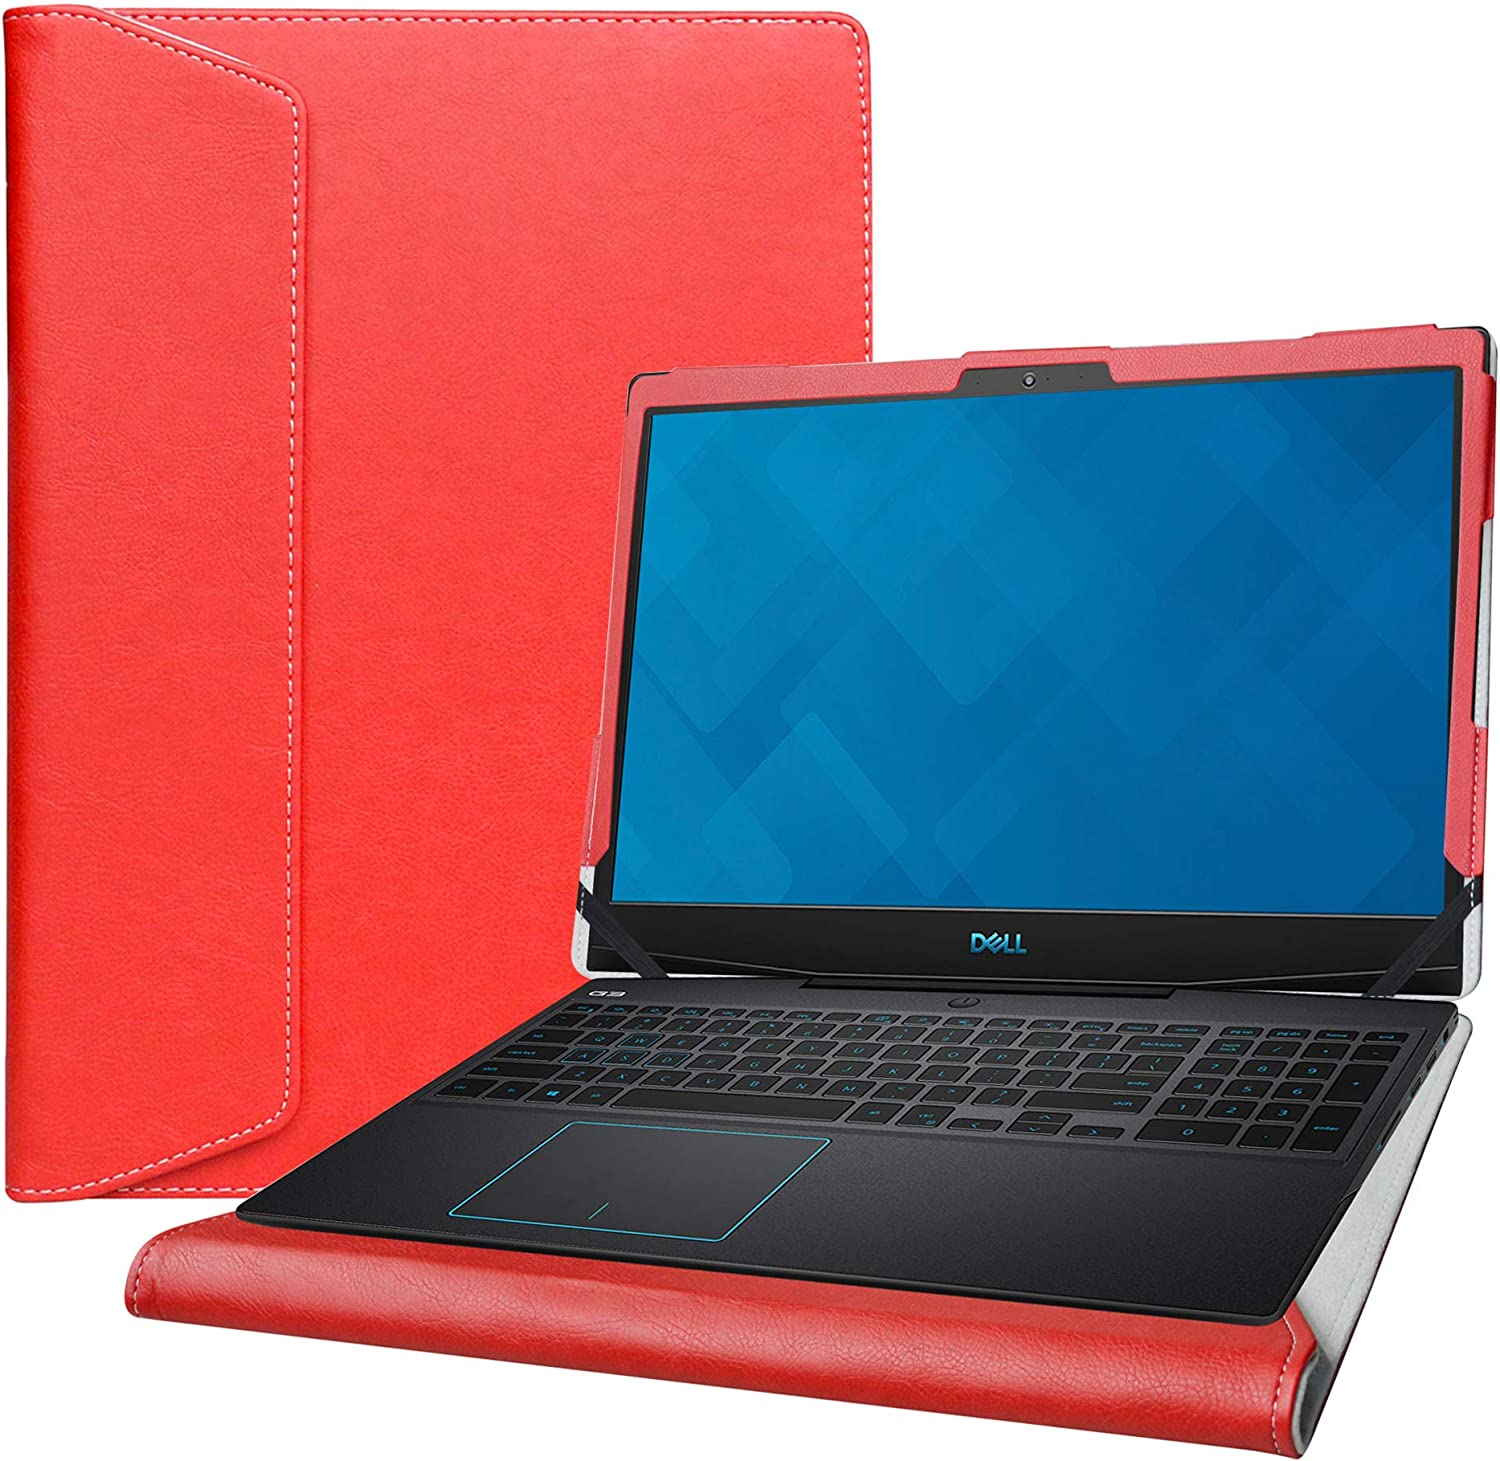 """Alapmk Protective Case for 15.6"""" Dell G3 15 3590 3500 & Acer Aspire 7 A715-74G A715-75G & Lenovo ideapad L340 15 L340-15API/ideapad L3 15IML05 Laptop[Not fit Dell G3 15 3579/Inspiron 15 3590],Red"""